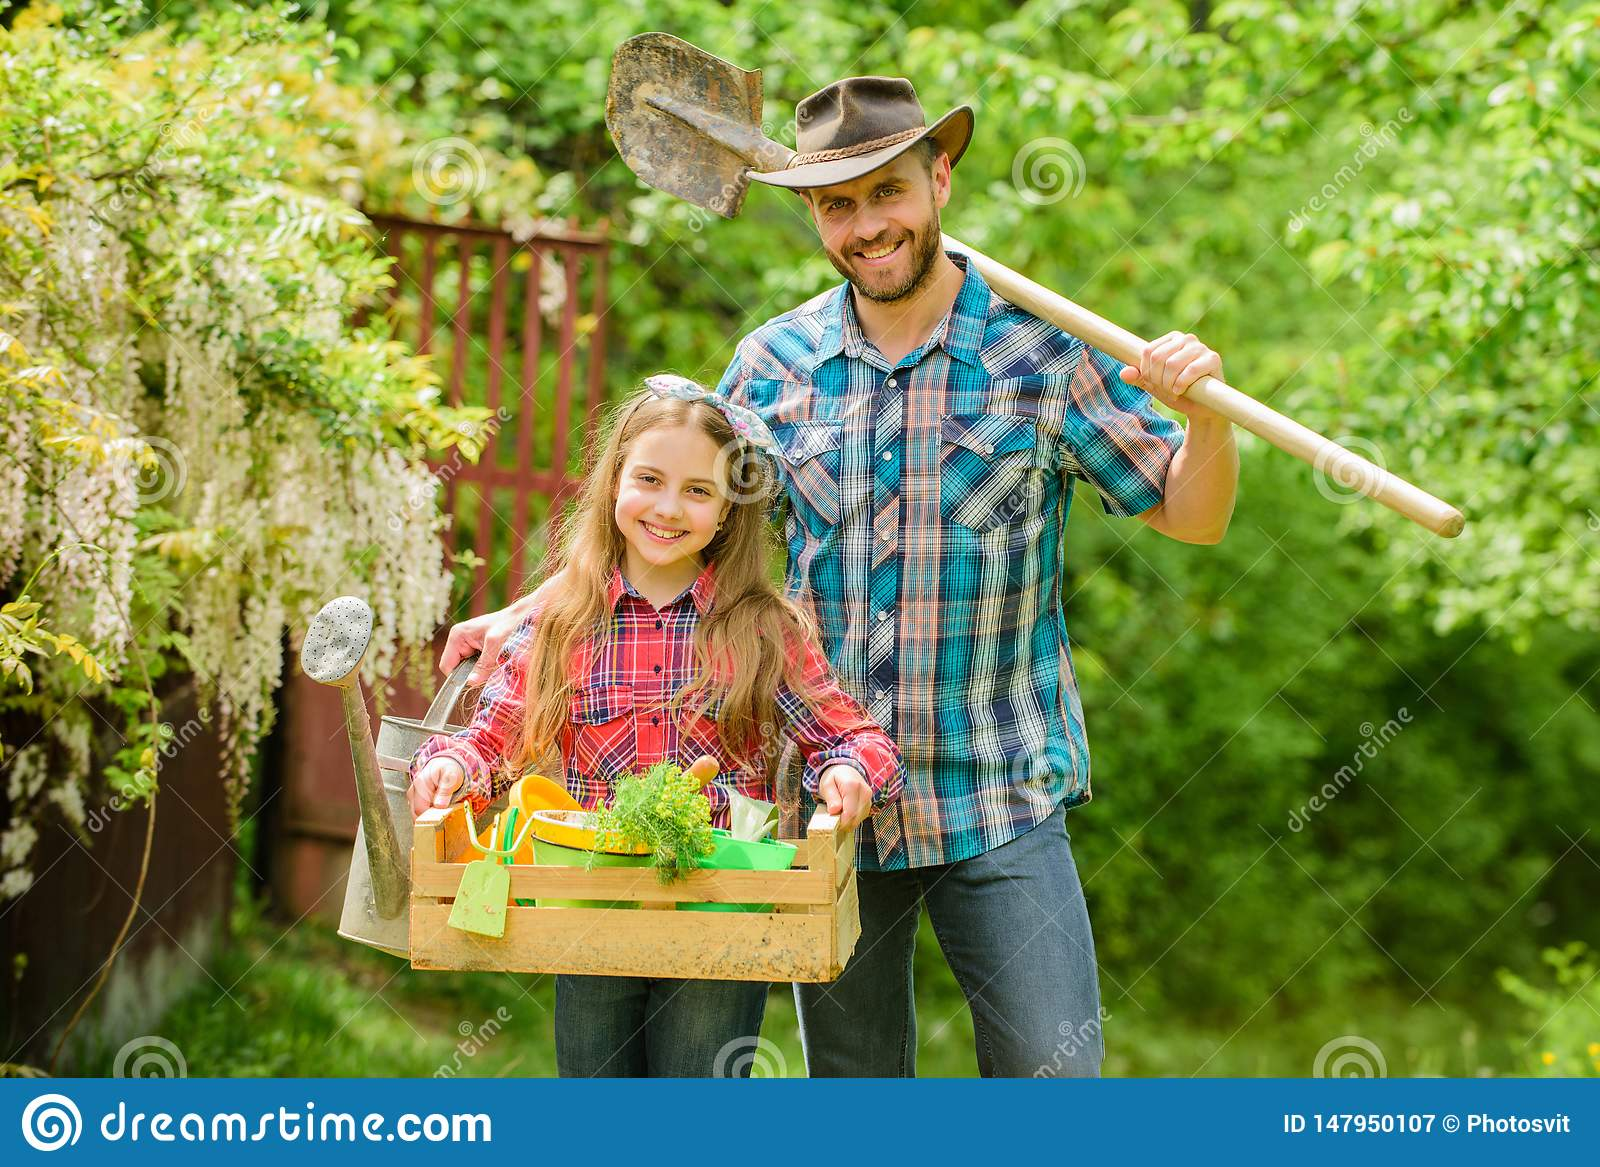 Planting season. Inspect your garden daily to spot insect trouble early. Family dad and daughter little girl planting